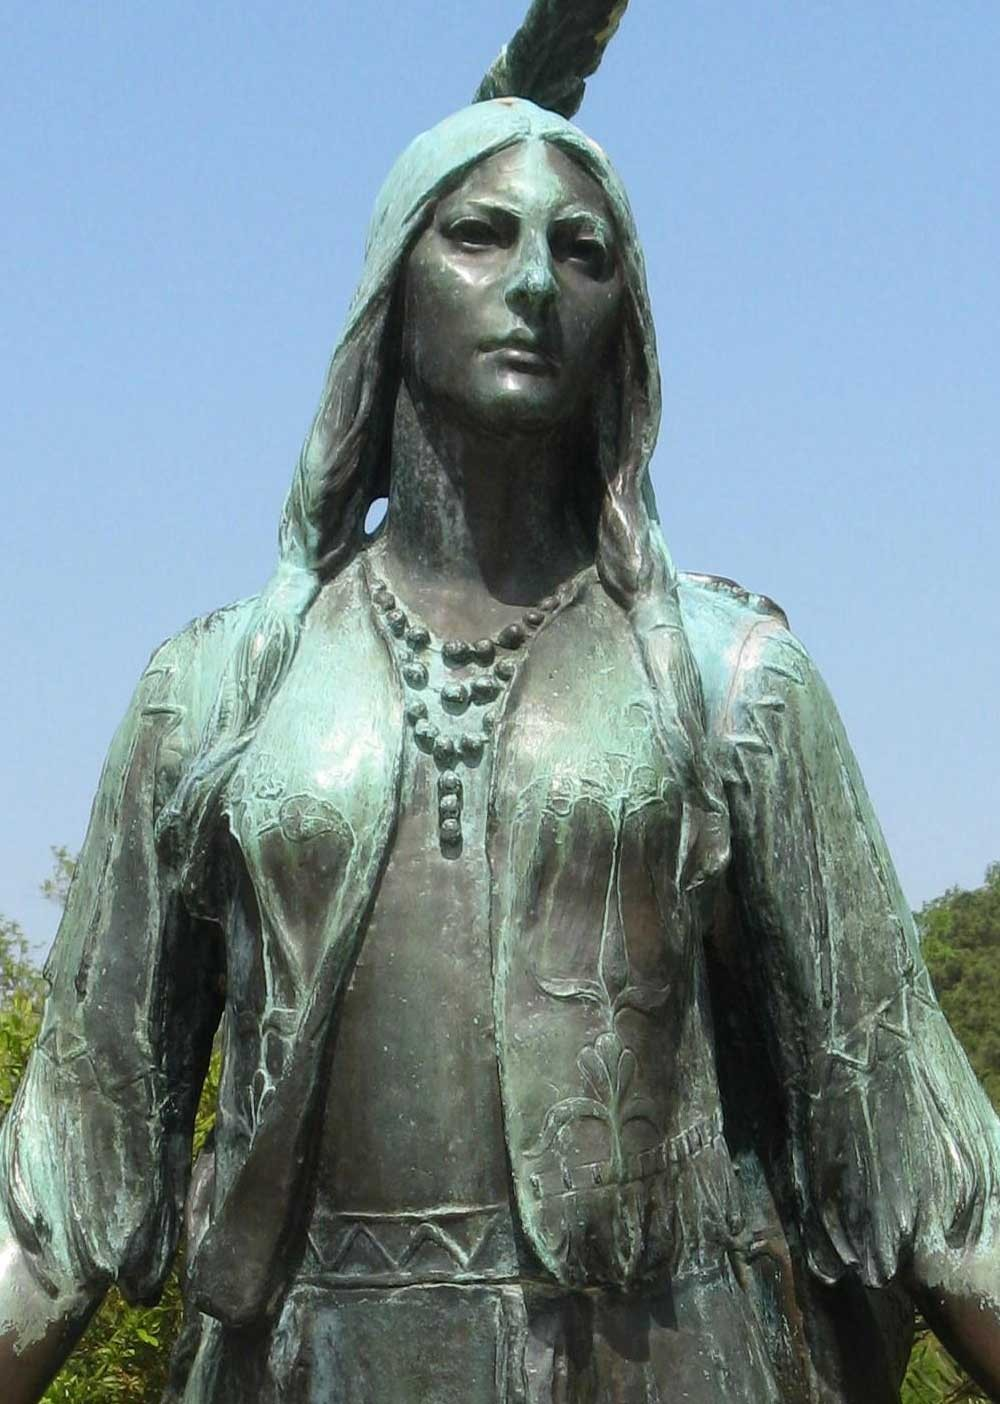 An idealised statue of Pocahontas in Williamsburg, Virginia (USA)